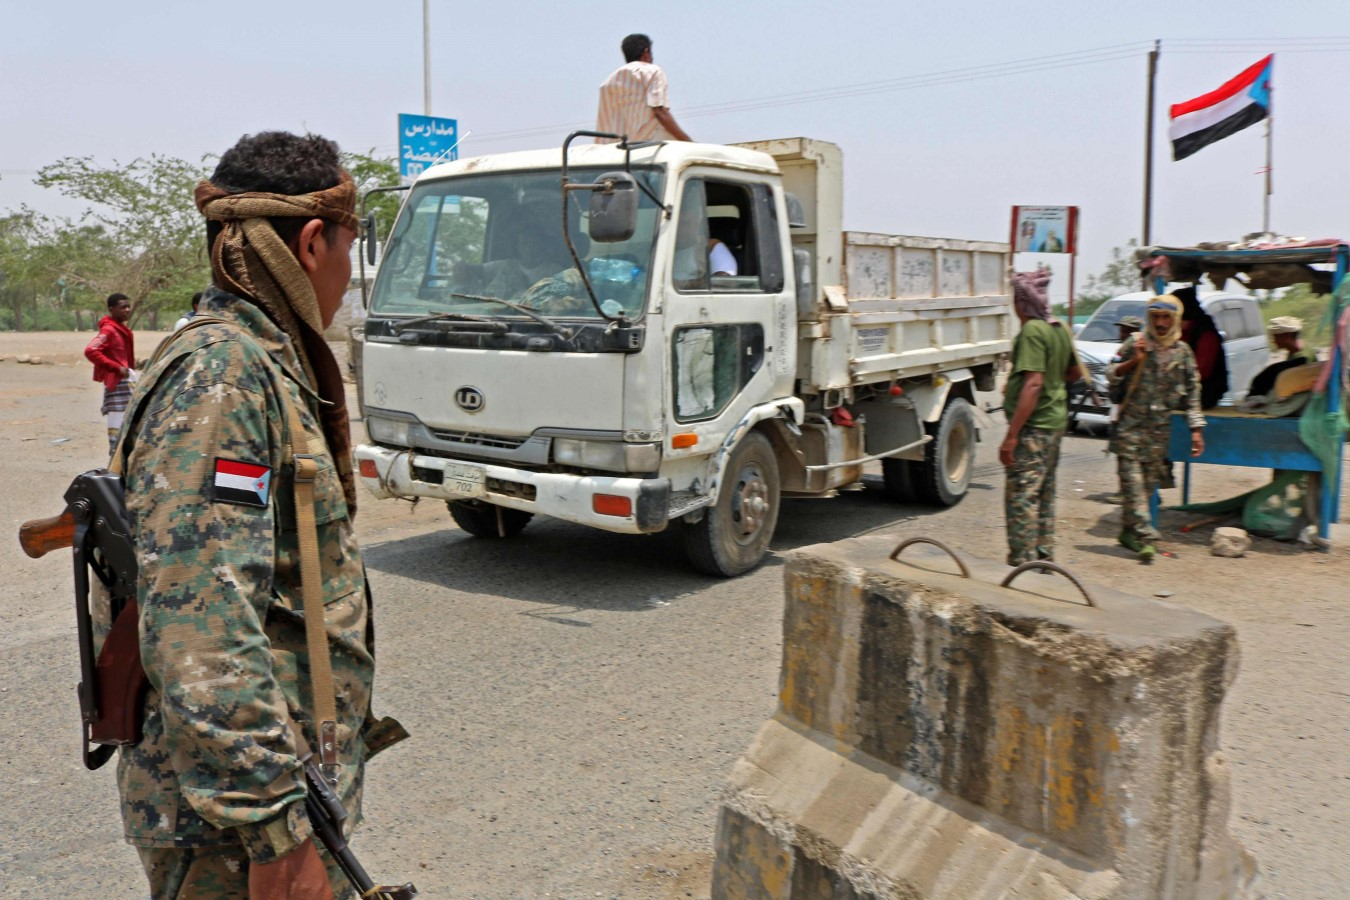 Fighters with the UAE-trained Security Belt Forces loyal to the pro-independence Southern Transitional Council (STC) man a checkpoint near the south-central coastal city of Zinjibar in south-central Yemen, August 21, 2019. (AFP)